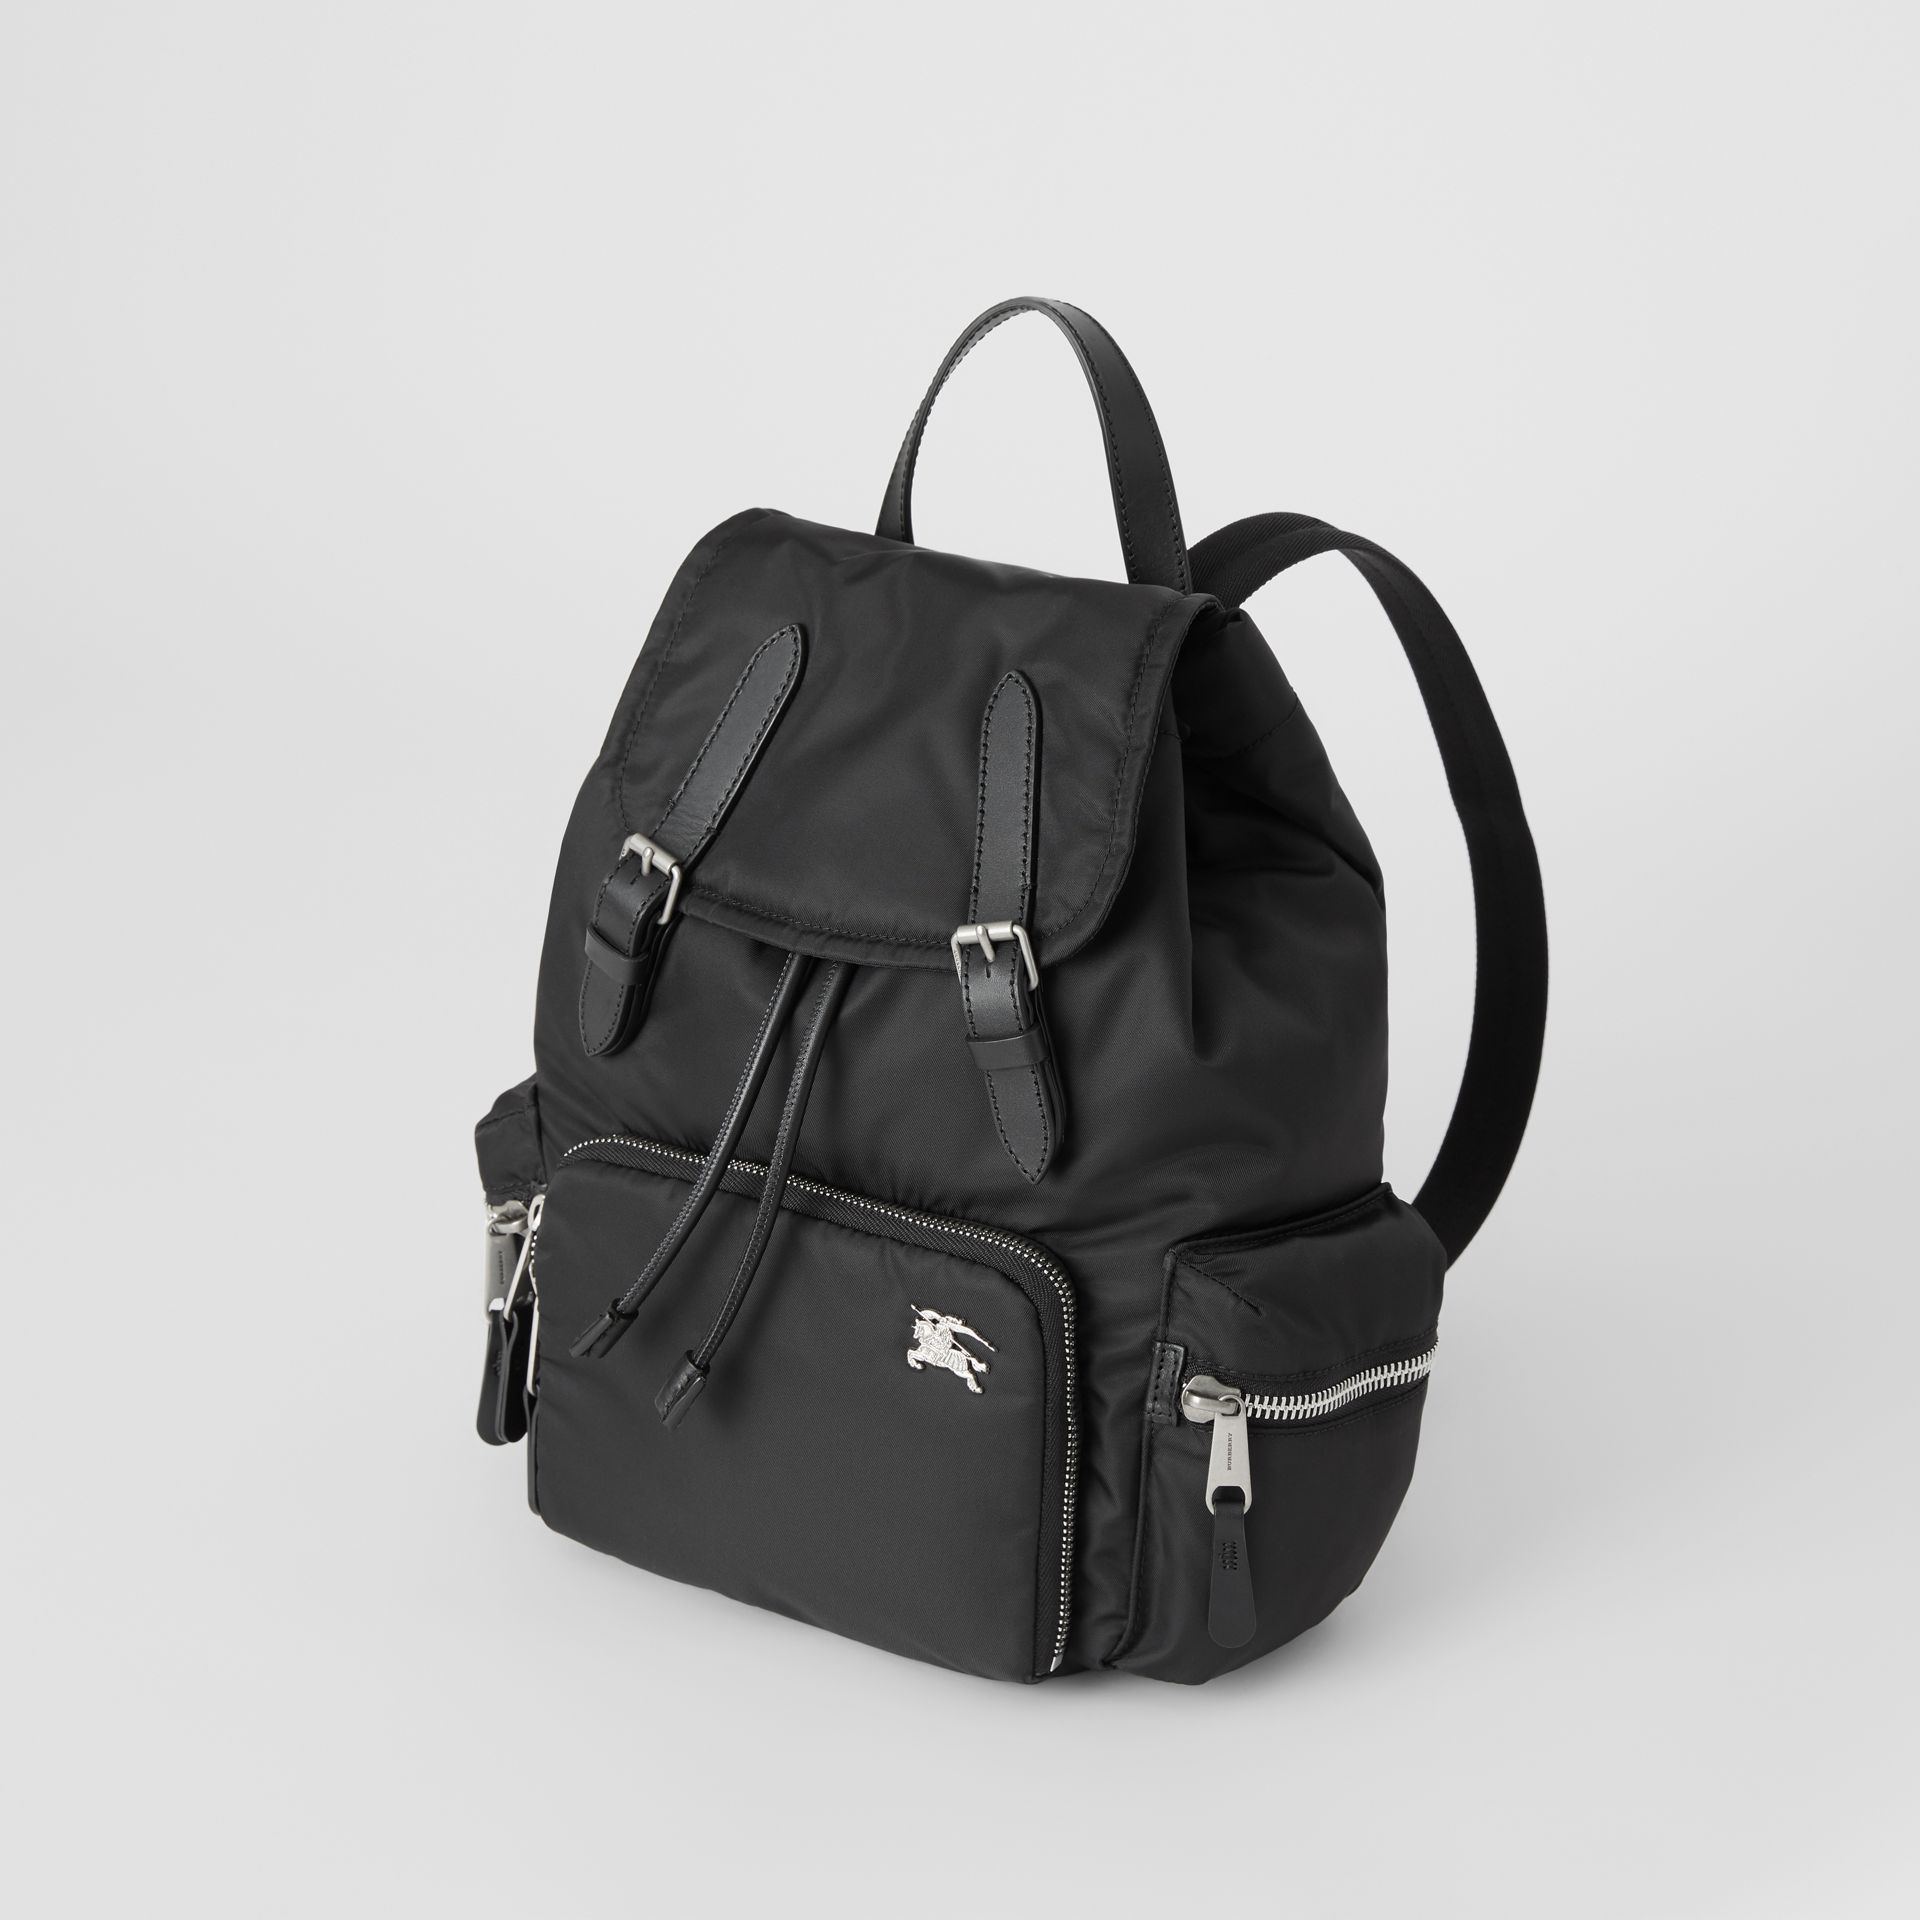 Sac The Rucksack moyen en nylon et cuir (Noir) - Femme | Burberry - photo de la galerie 4